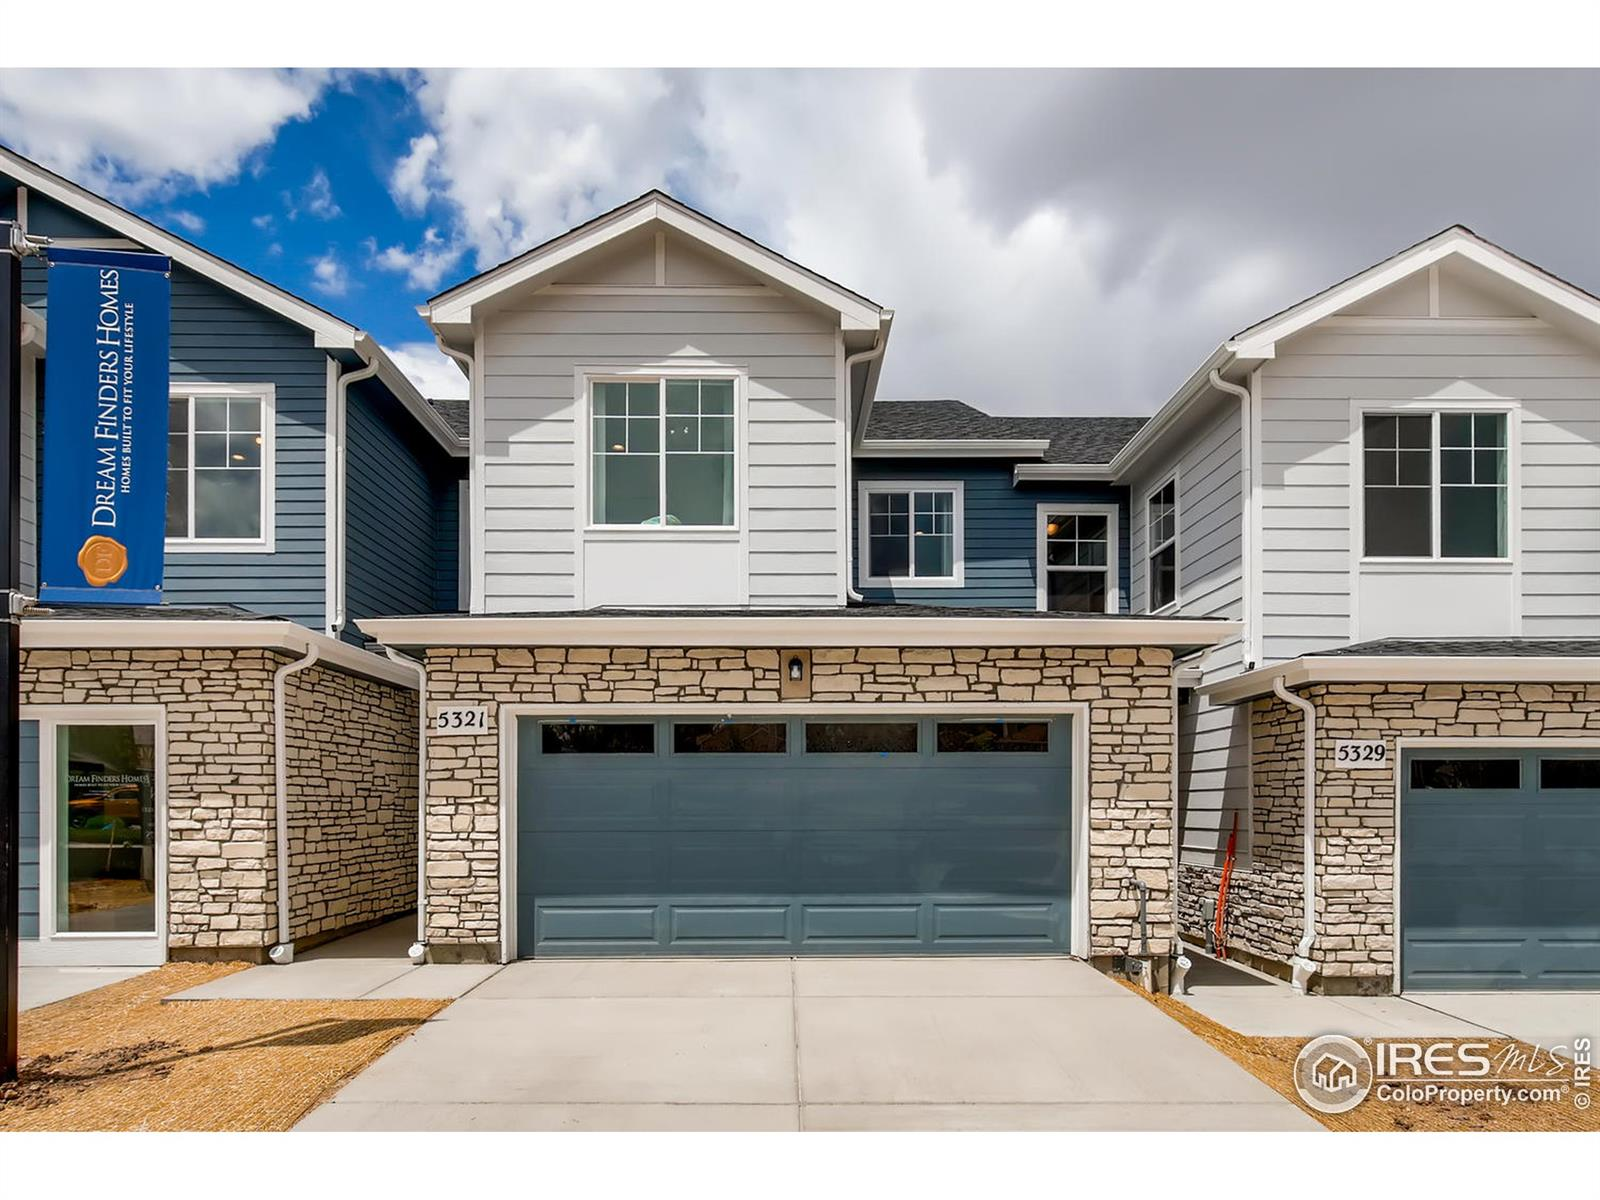 """Luxury Townhome in the heart of Castlerock with a spring 2021 completion! The beautiful Essex is a 3 bed, 2.5 bath, attached 2 car garage, patio, and basement! Includes kitchen with stainless steel appliances, gas range, dishwasher, and built-in microwave. Has a spacious living area, formal dining space, island kitchen, & tile in all wet areas. Includes energy-efficient furnace, A/C, tankless water heater, and 2"""" white blinds. Enjoy living at The Enclave just moments away from major highways, shopping, dining, and multiple outdoor activities! Luxury Townhome in the heart of Castlerock with a spring 2021 completion! The beautiful Essex is a 3 bed, 2.5 bath, with attached 2 car garage, and back patio!  Open floorplan with spacious living area & kitchen island perfect for entertaining."""